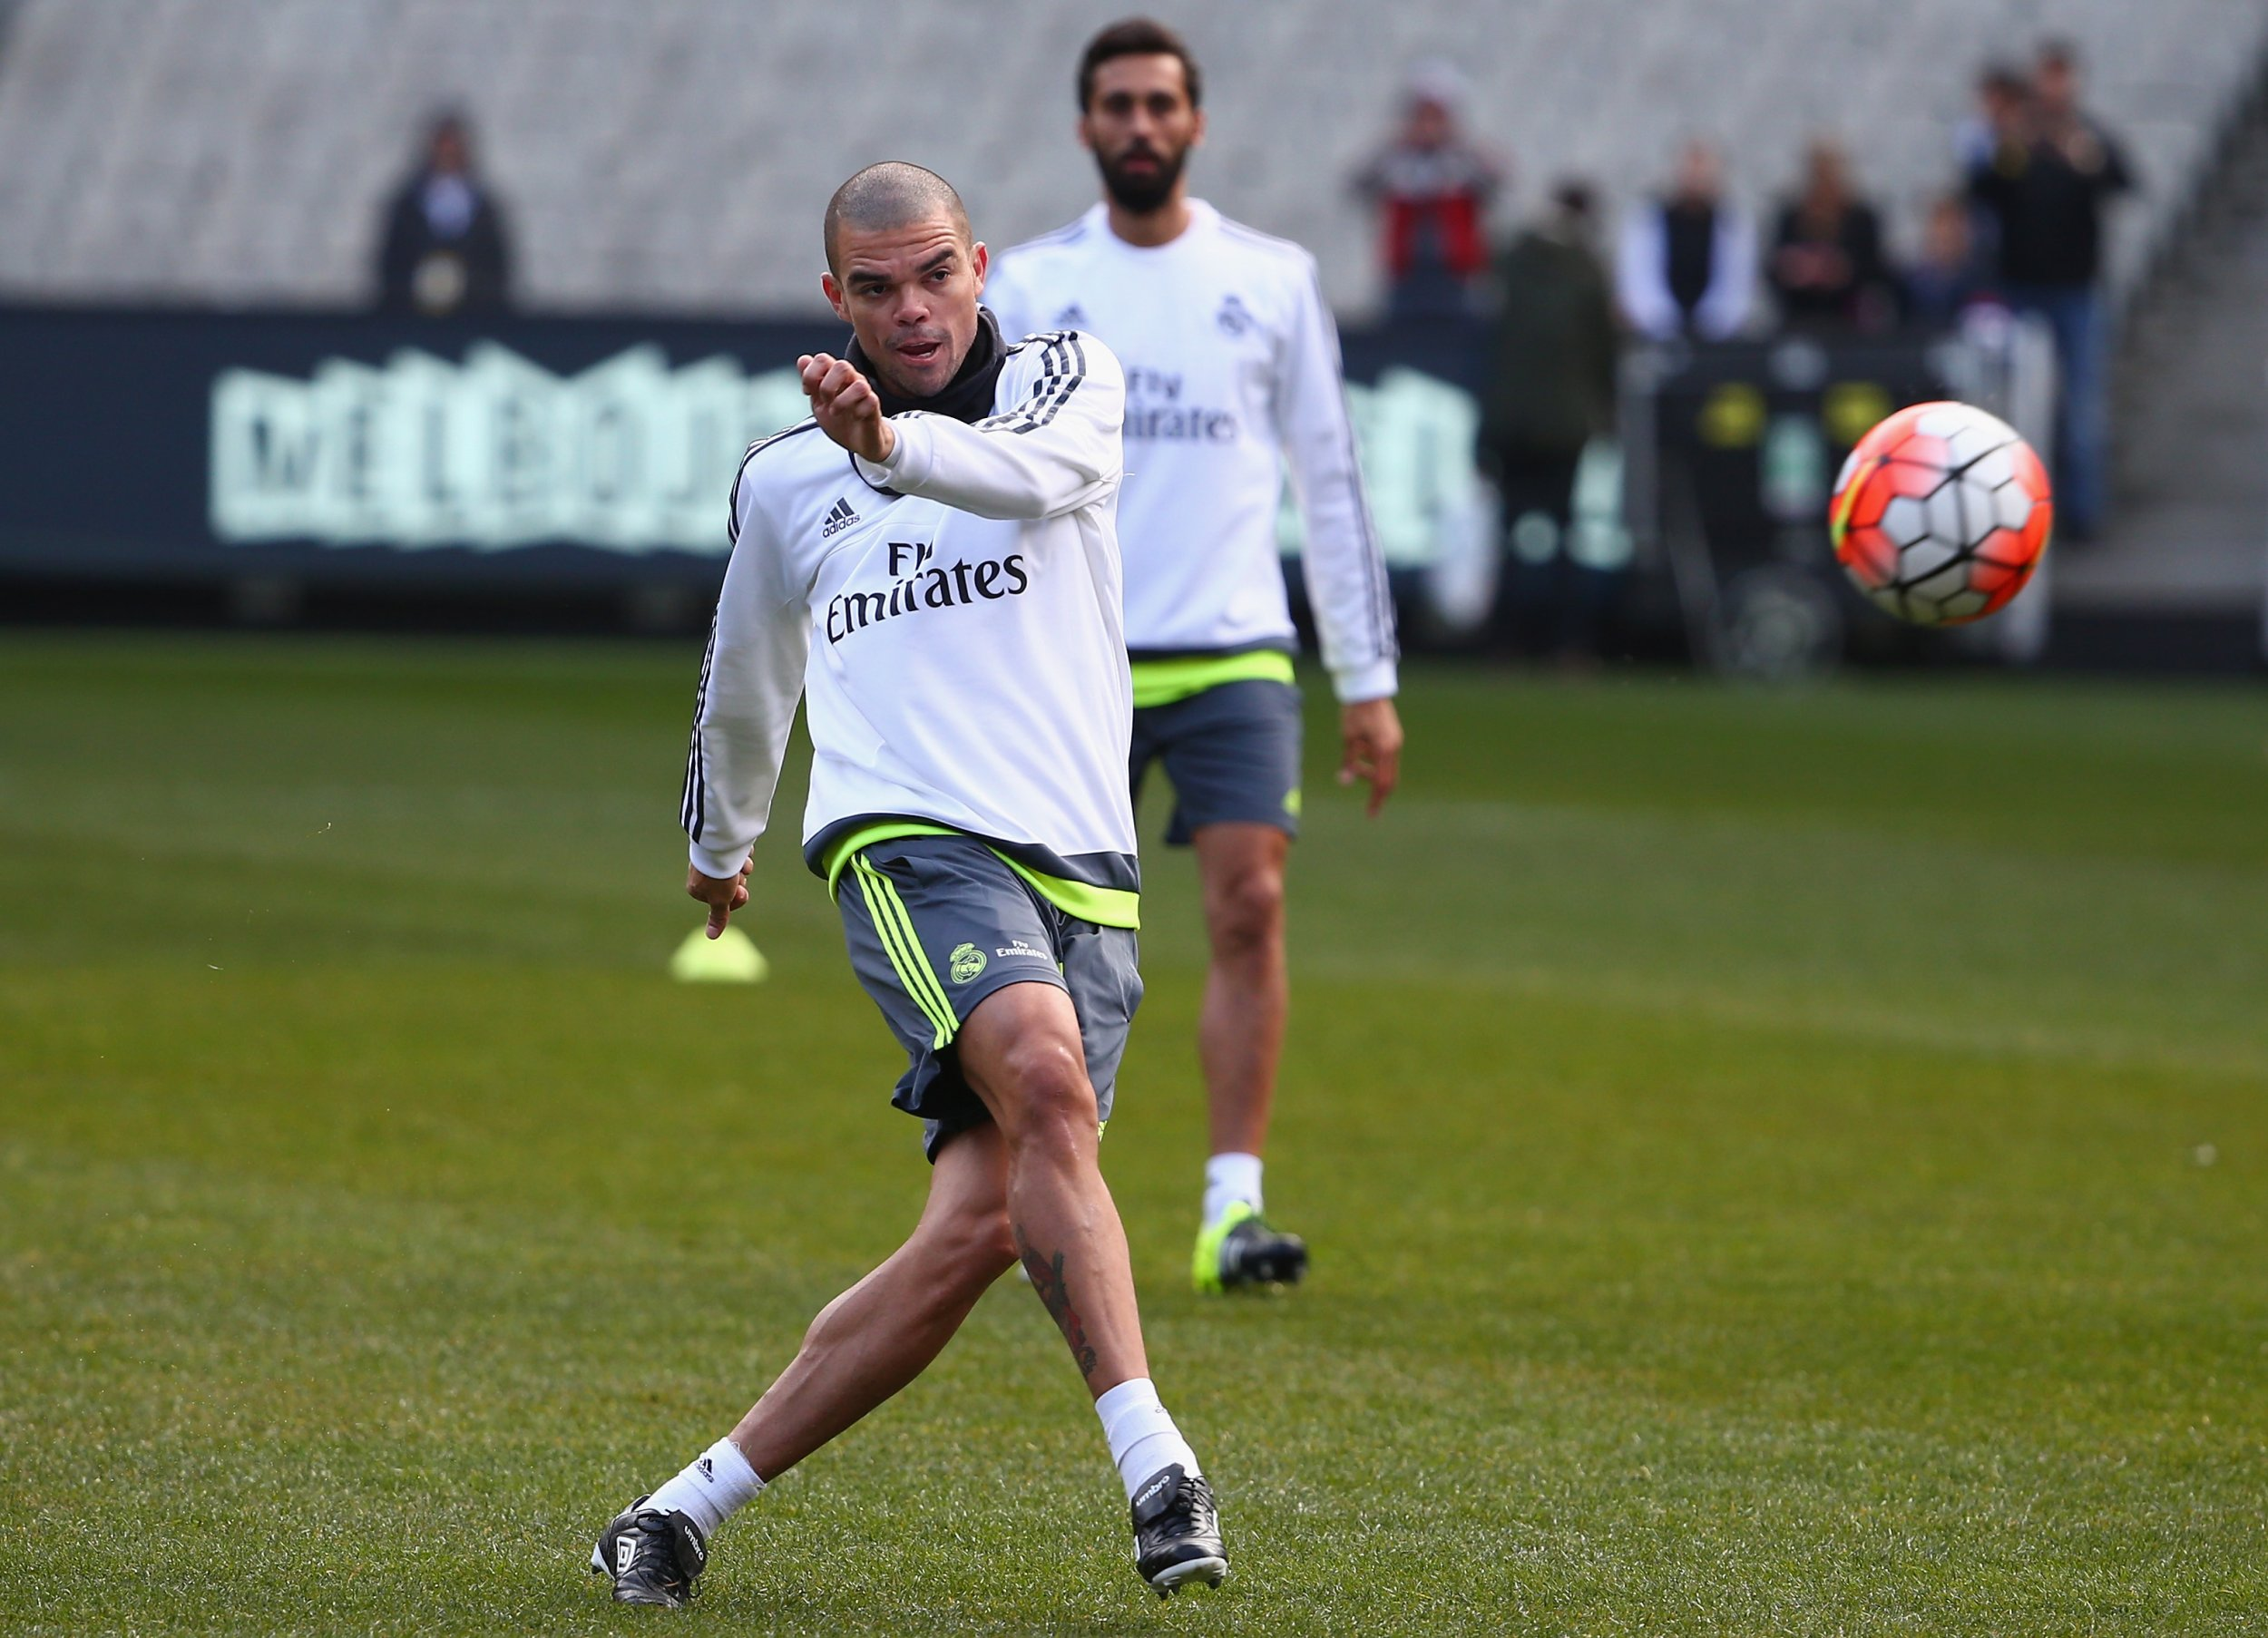 Real Madrid defender Pepe in training, July 2015.